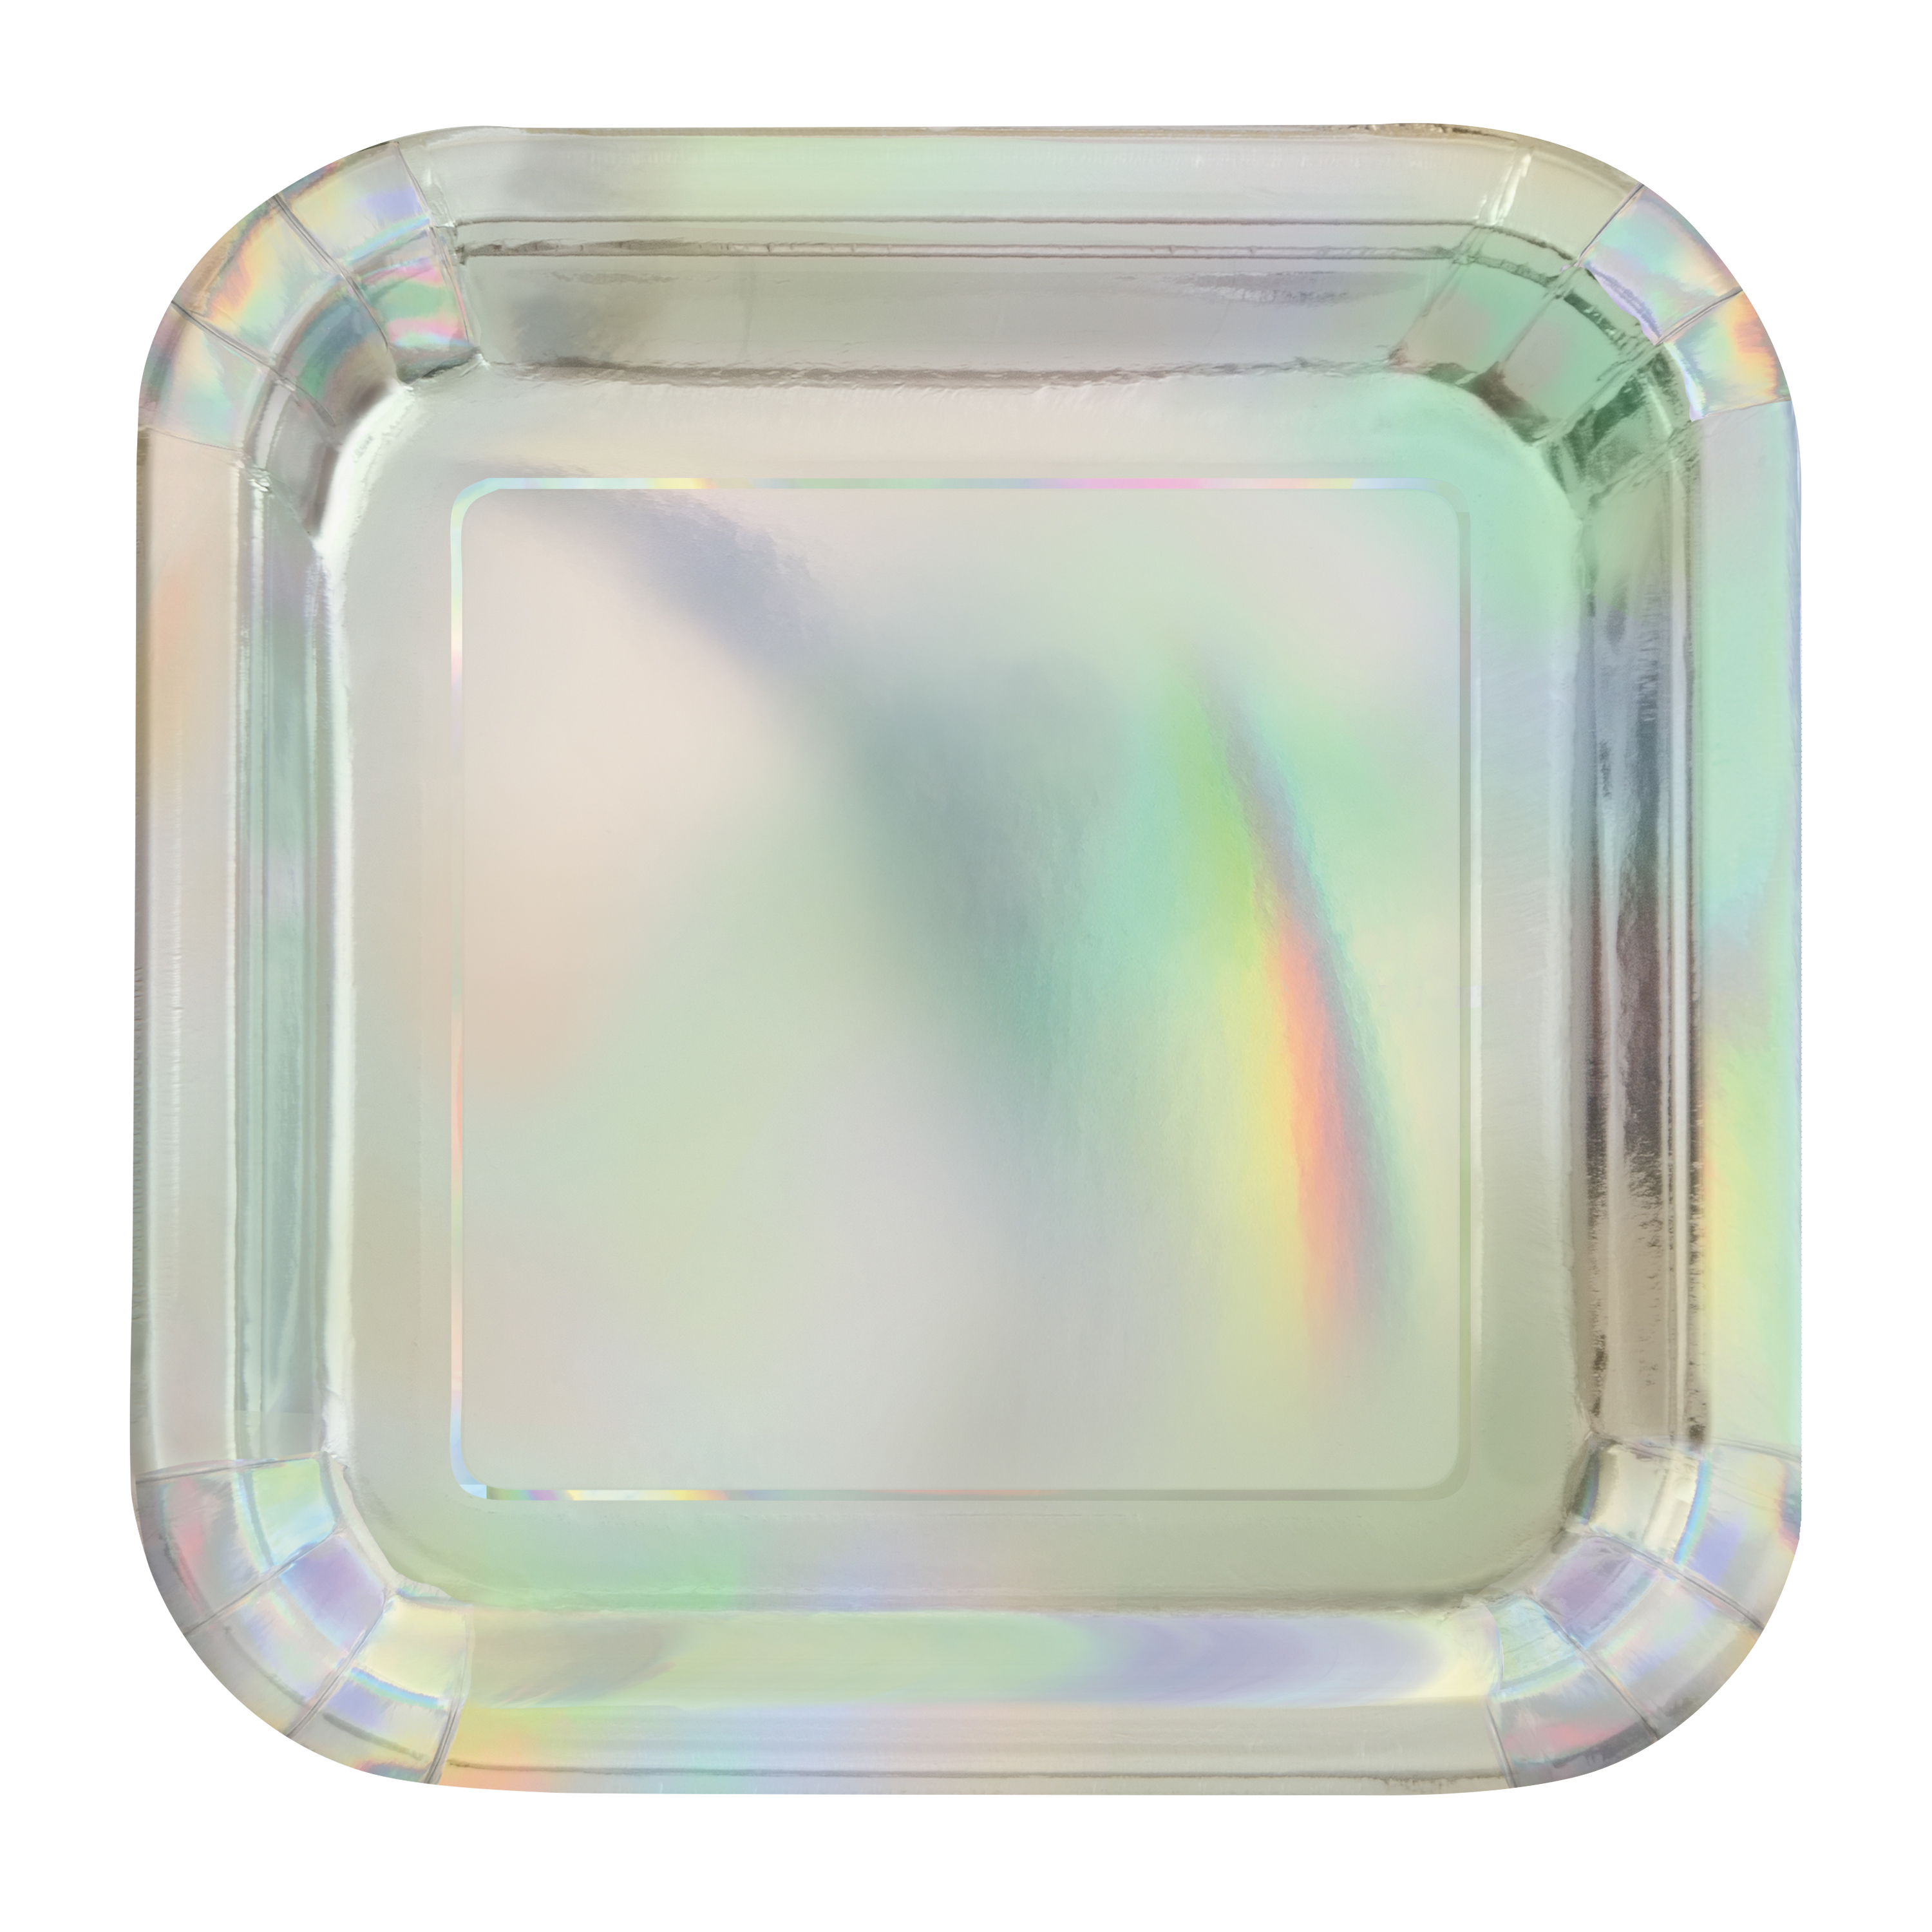 Foil Square Paper Plates 7 in Iridescent 8ct  sc 1 st  Corporate Perks Lite Perks at Work & Foil Square Paper Plates 7 in Iridescent 8ct - Corporate Perks ...